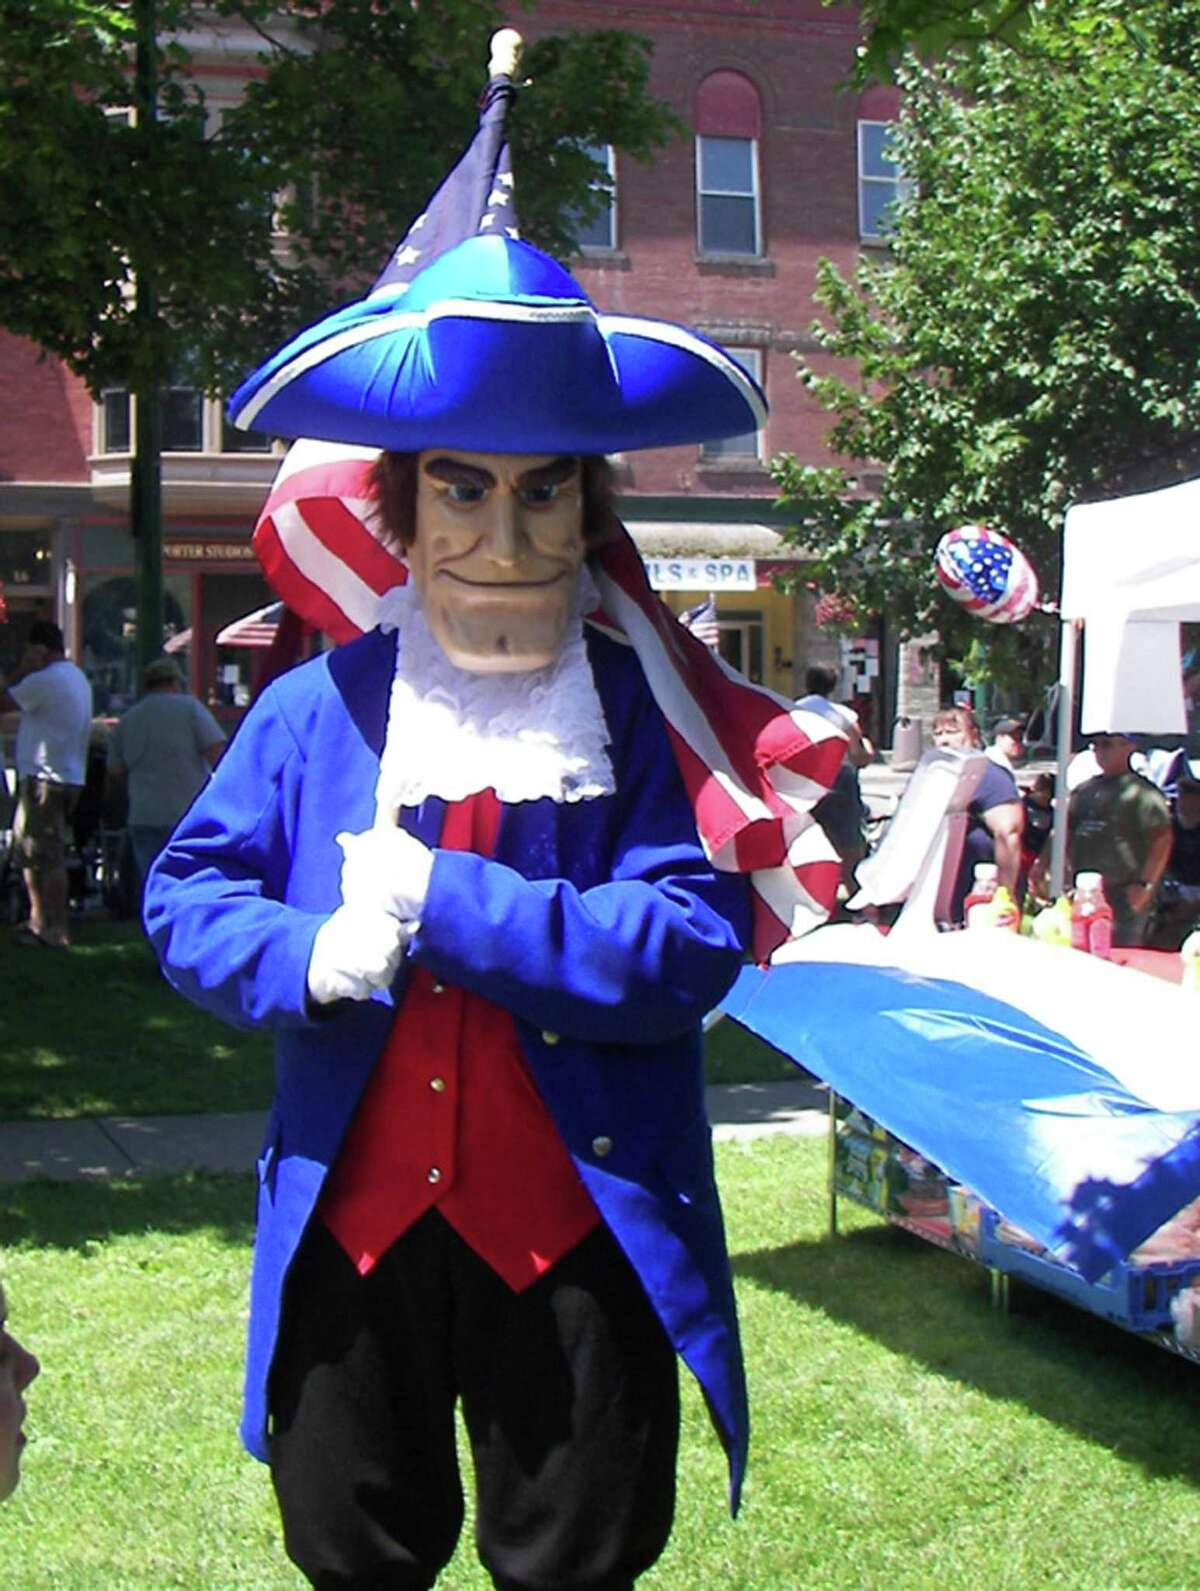 SUBMITTED PHOTO The spirit of 1776 will come alive again in Hamilton this weekend as the annual 4th of July festivities return to the village.